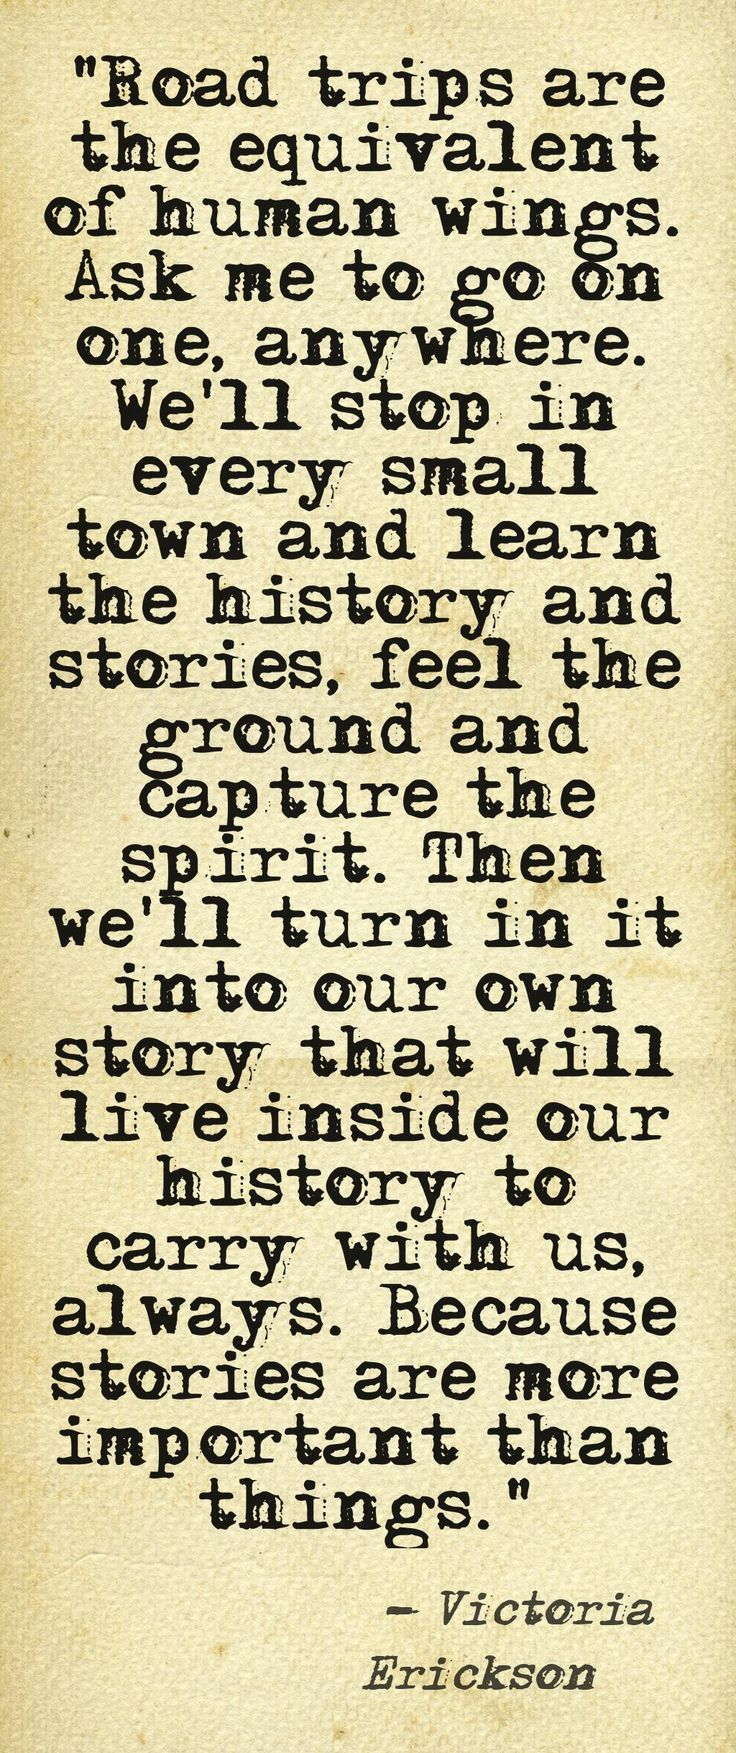 Victoria Erickson (FB: VictoriaEricksonwriter ) I remember many Sunday road trips in my early married years...wonderful. :)